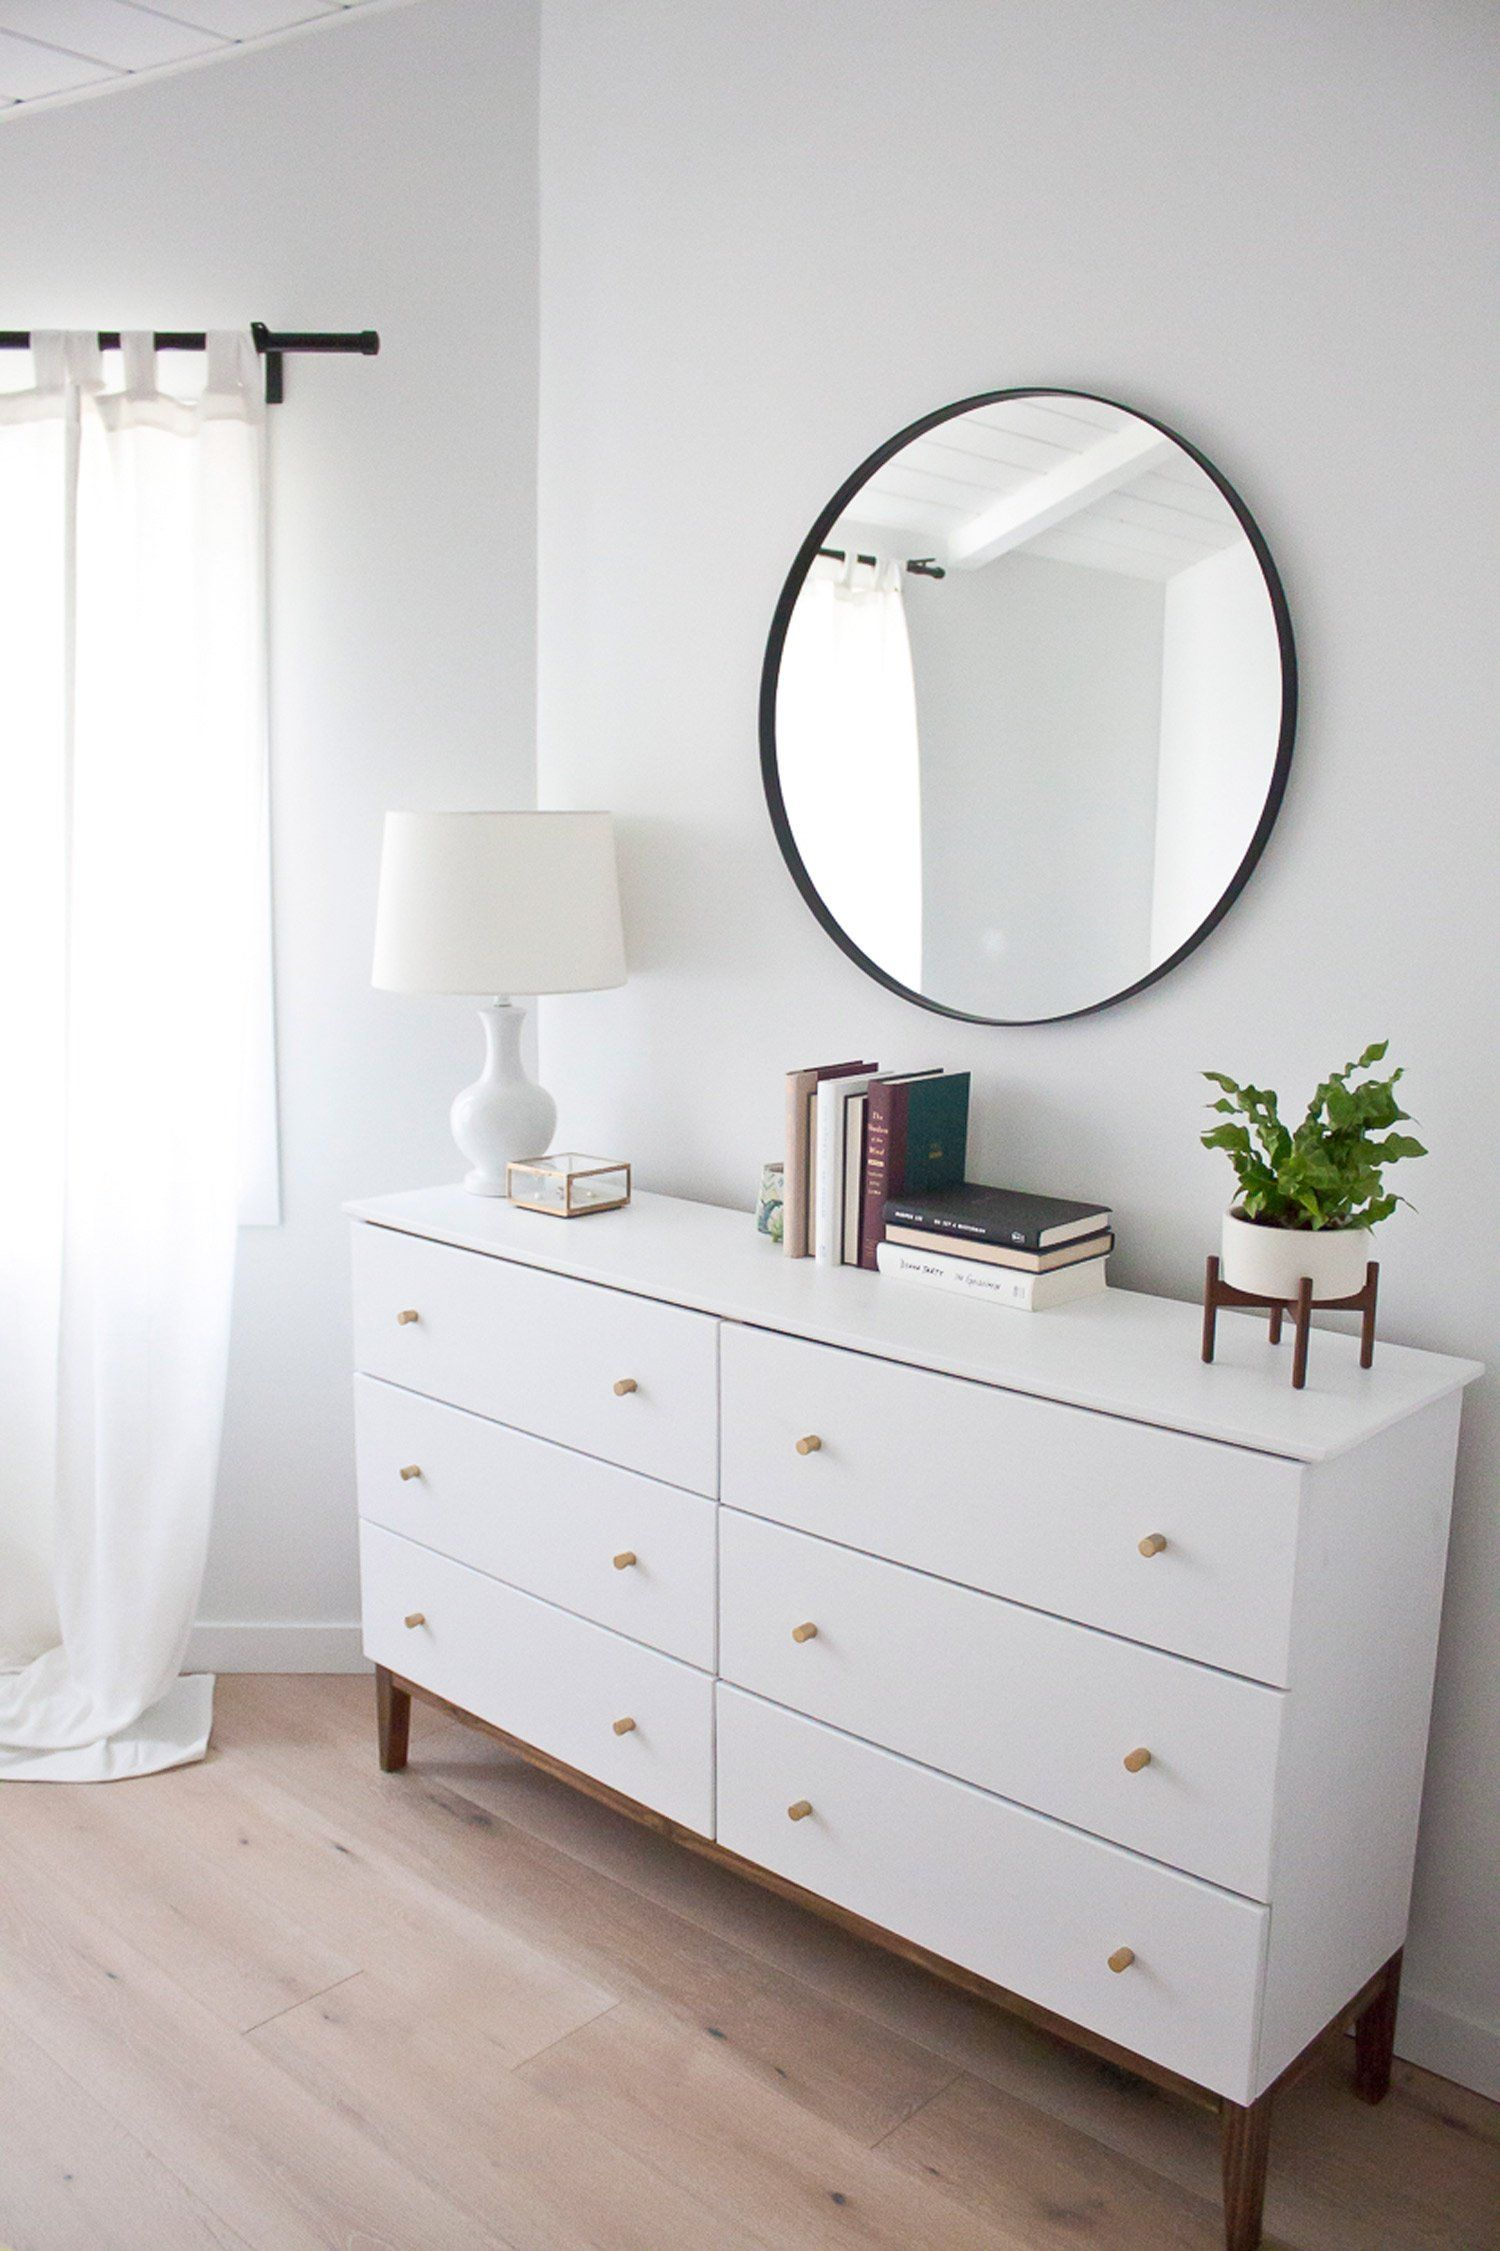 Ikea Schlafzimmer Komode How To Make An Ikea Dresser Look Like A Midcentury Splurge